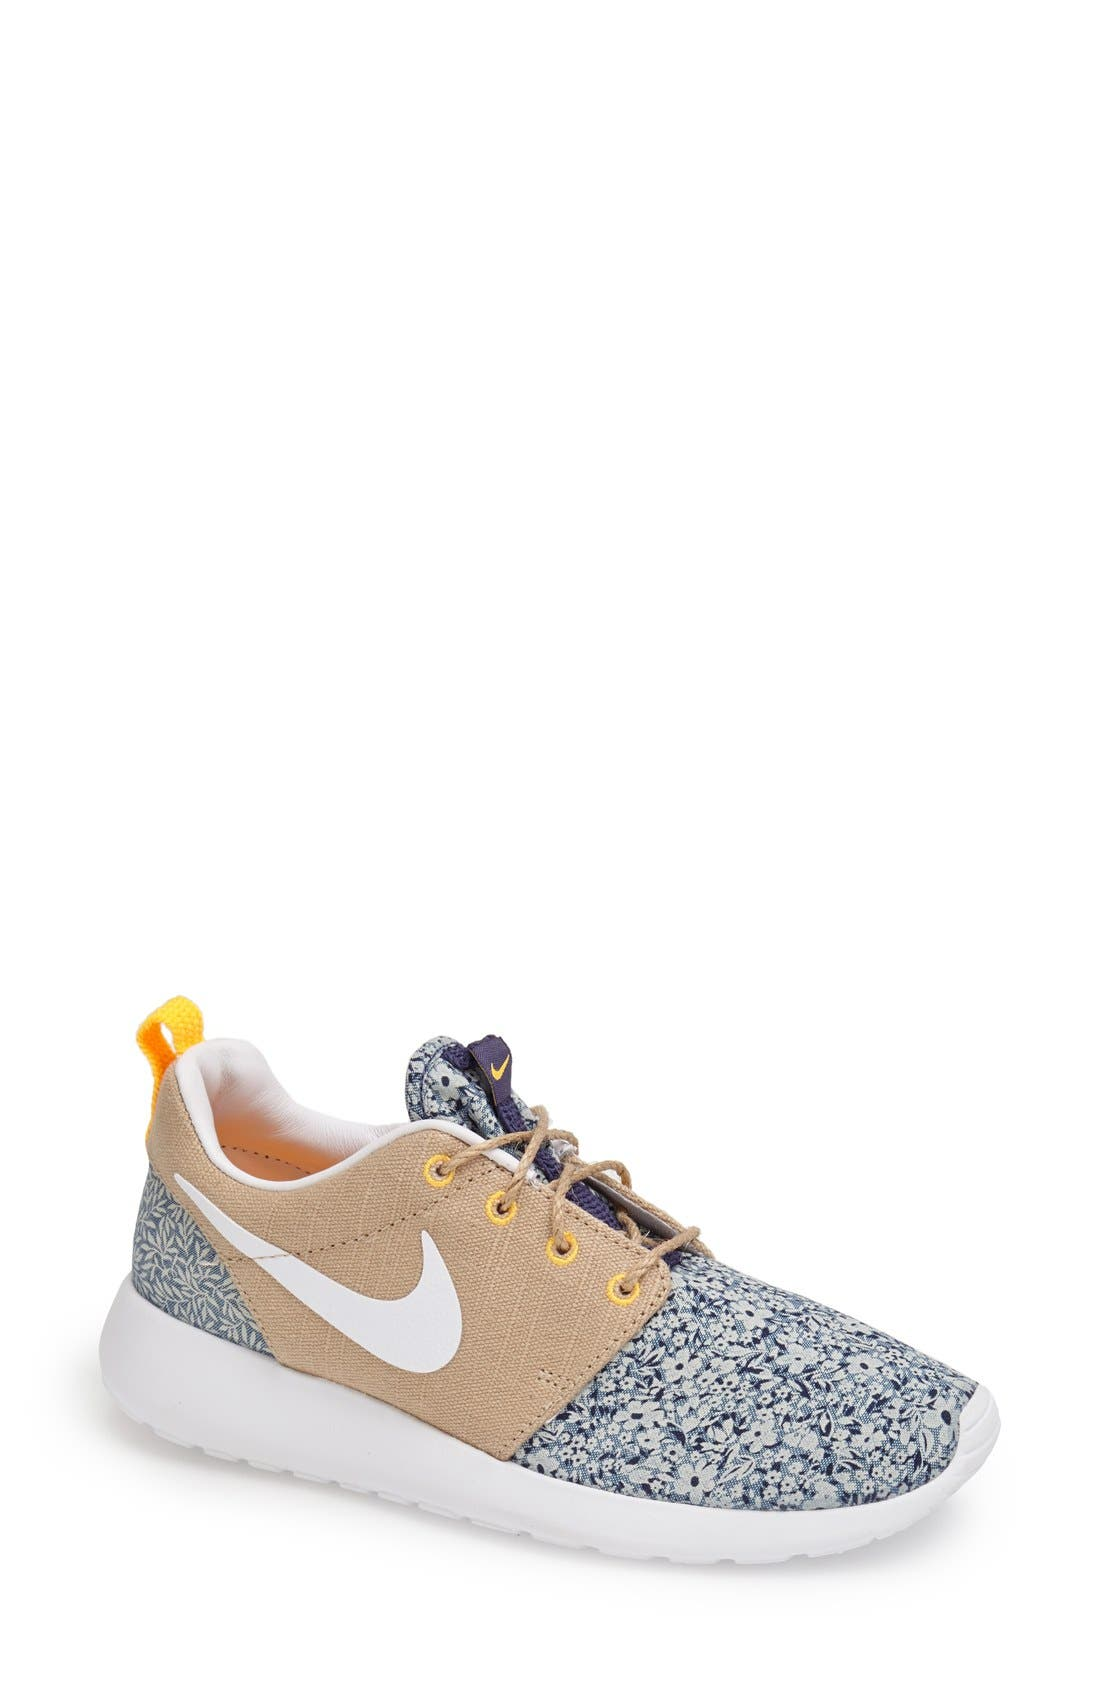 Alternate Image 1 Selected - Nike 'Roshe Run - Liberty' Sneaker (Women)